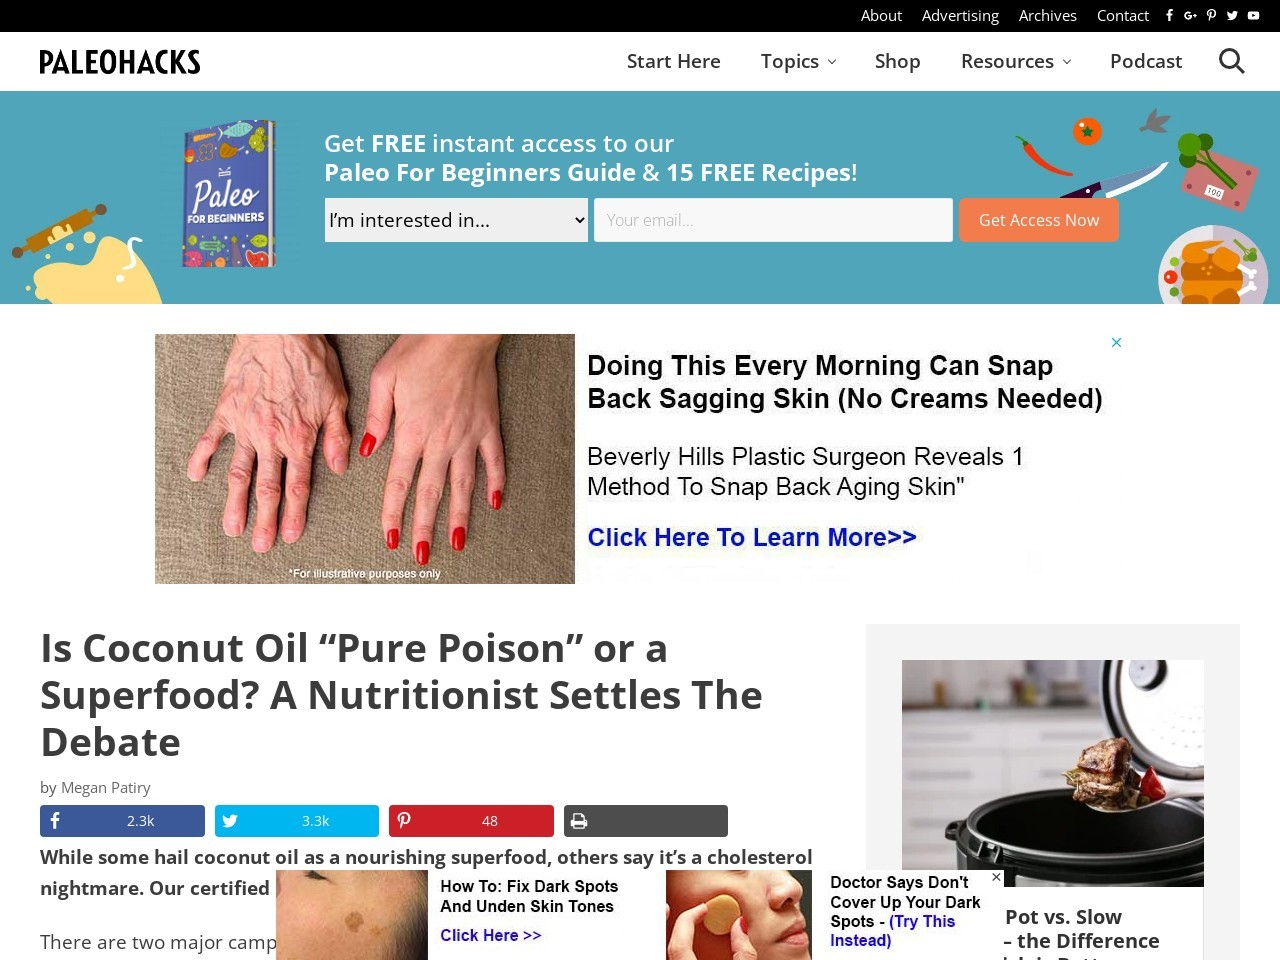 """Is Coconut Oil """"Pure Poison"""" or a Superfood? A Nutritionist Settles The Debate"""